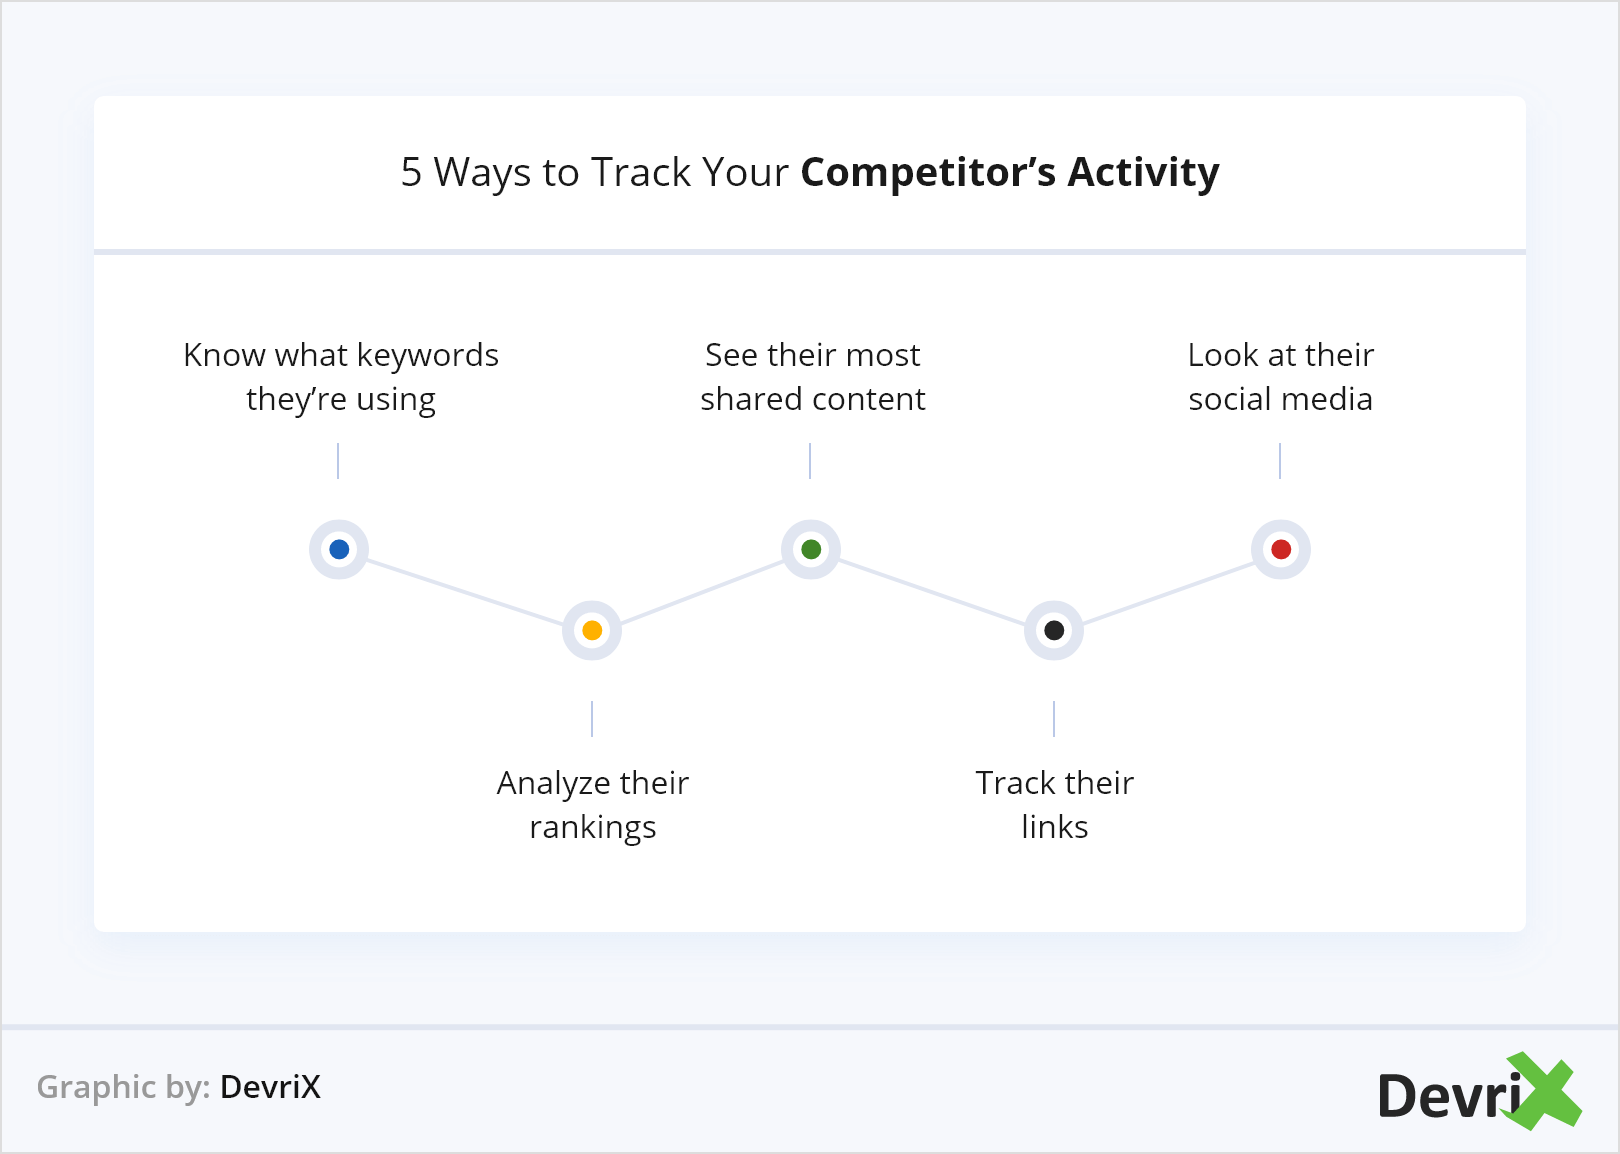 Track Your Competitor's Activity